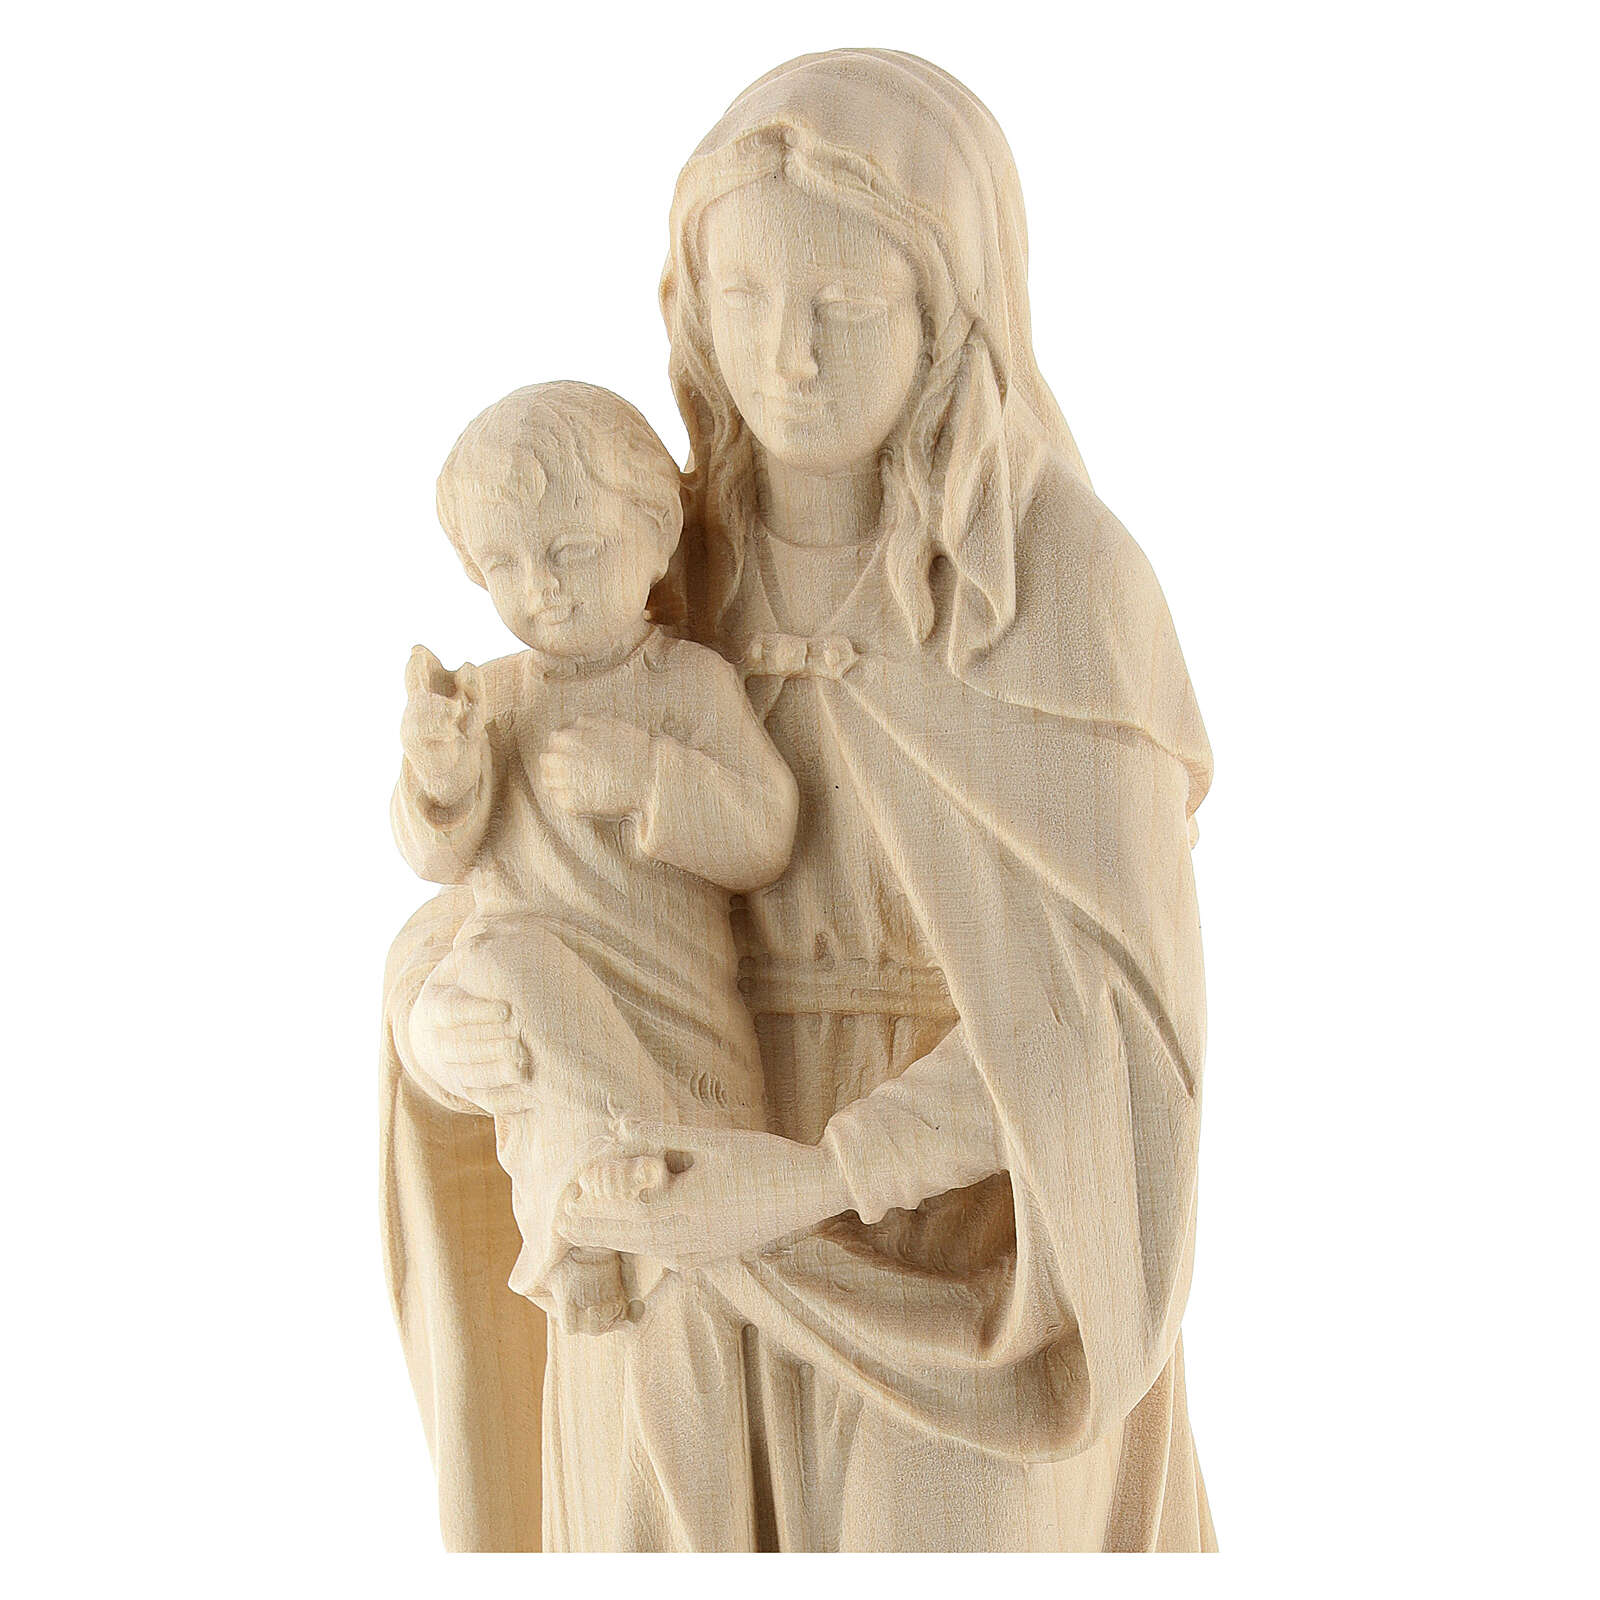 Our Lady and Baby Jesus in natural Val Gardena wood 4